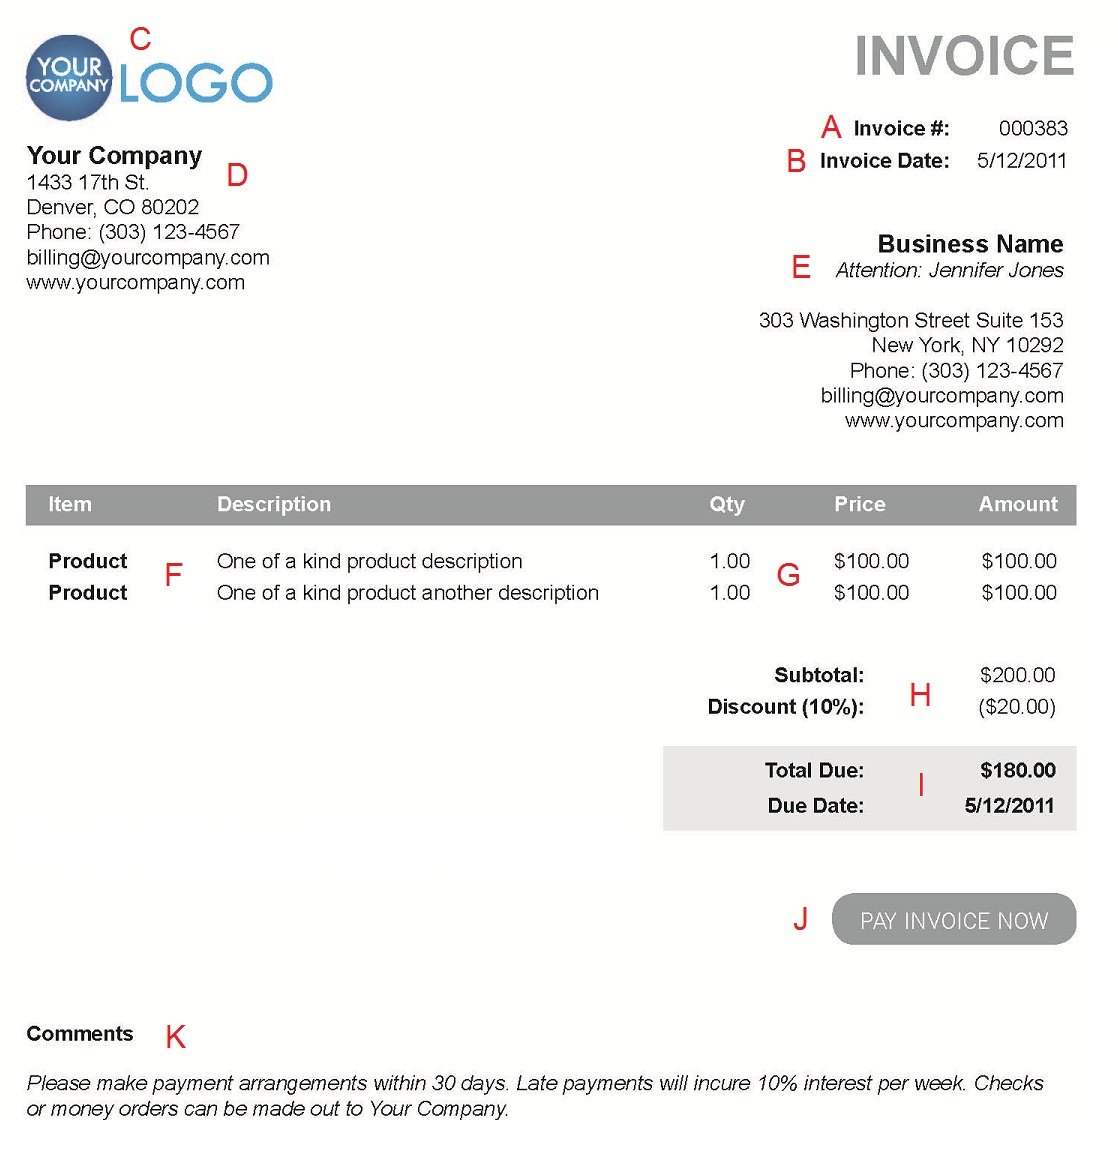 Pigbrotherus  Scenic The  Different Sections Of An Electronic Payment Invoice With Exciting A  With Endearing Free Blank Invoice Template Word Also What Is The Purpose Of An Invoice In Addition Free Printable Service Invoices And Mazda Cx  Dealer Invoice As Well As Mazda Invoice Additionally Contractor Invoicing Software From Paysimplecom With Pigbrotherus  Exciting The  Different Sections Of An Electronic Payment Invoice With Endearing A  And Scenic Free Blank Invoice Template Word Also What Is The Purpose Of An Invoice In Addition Free Printable Service Invoices From Paysimplecom